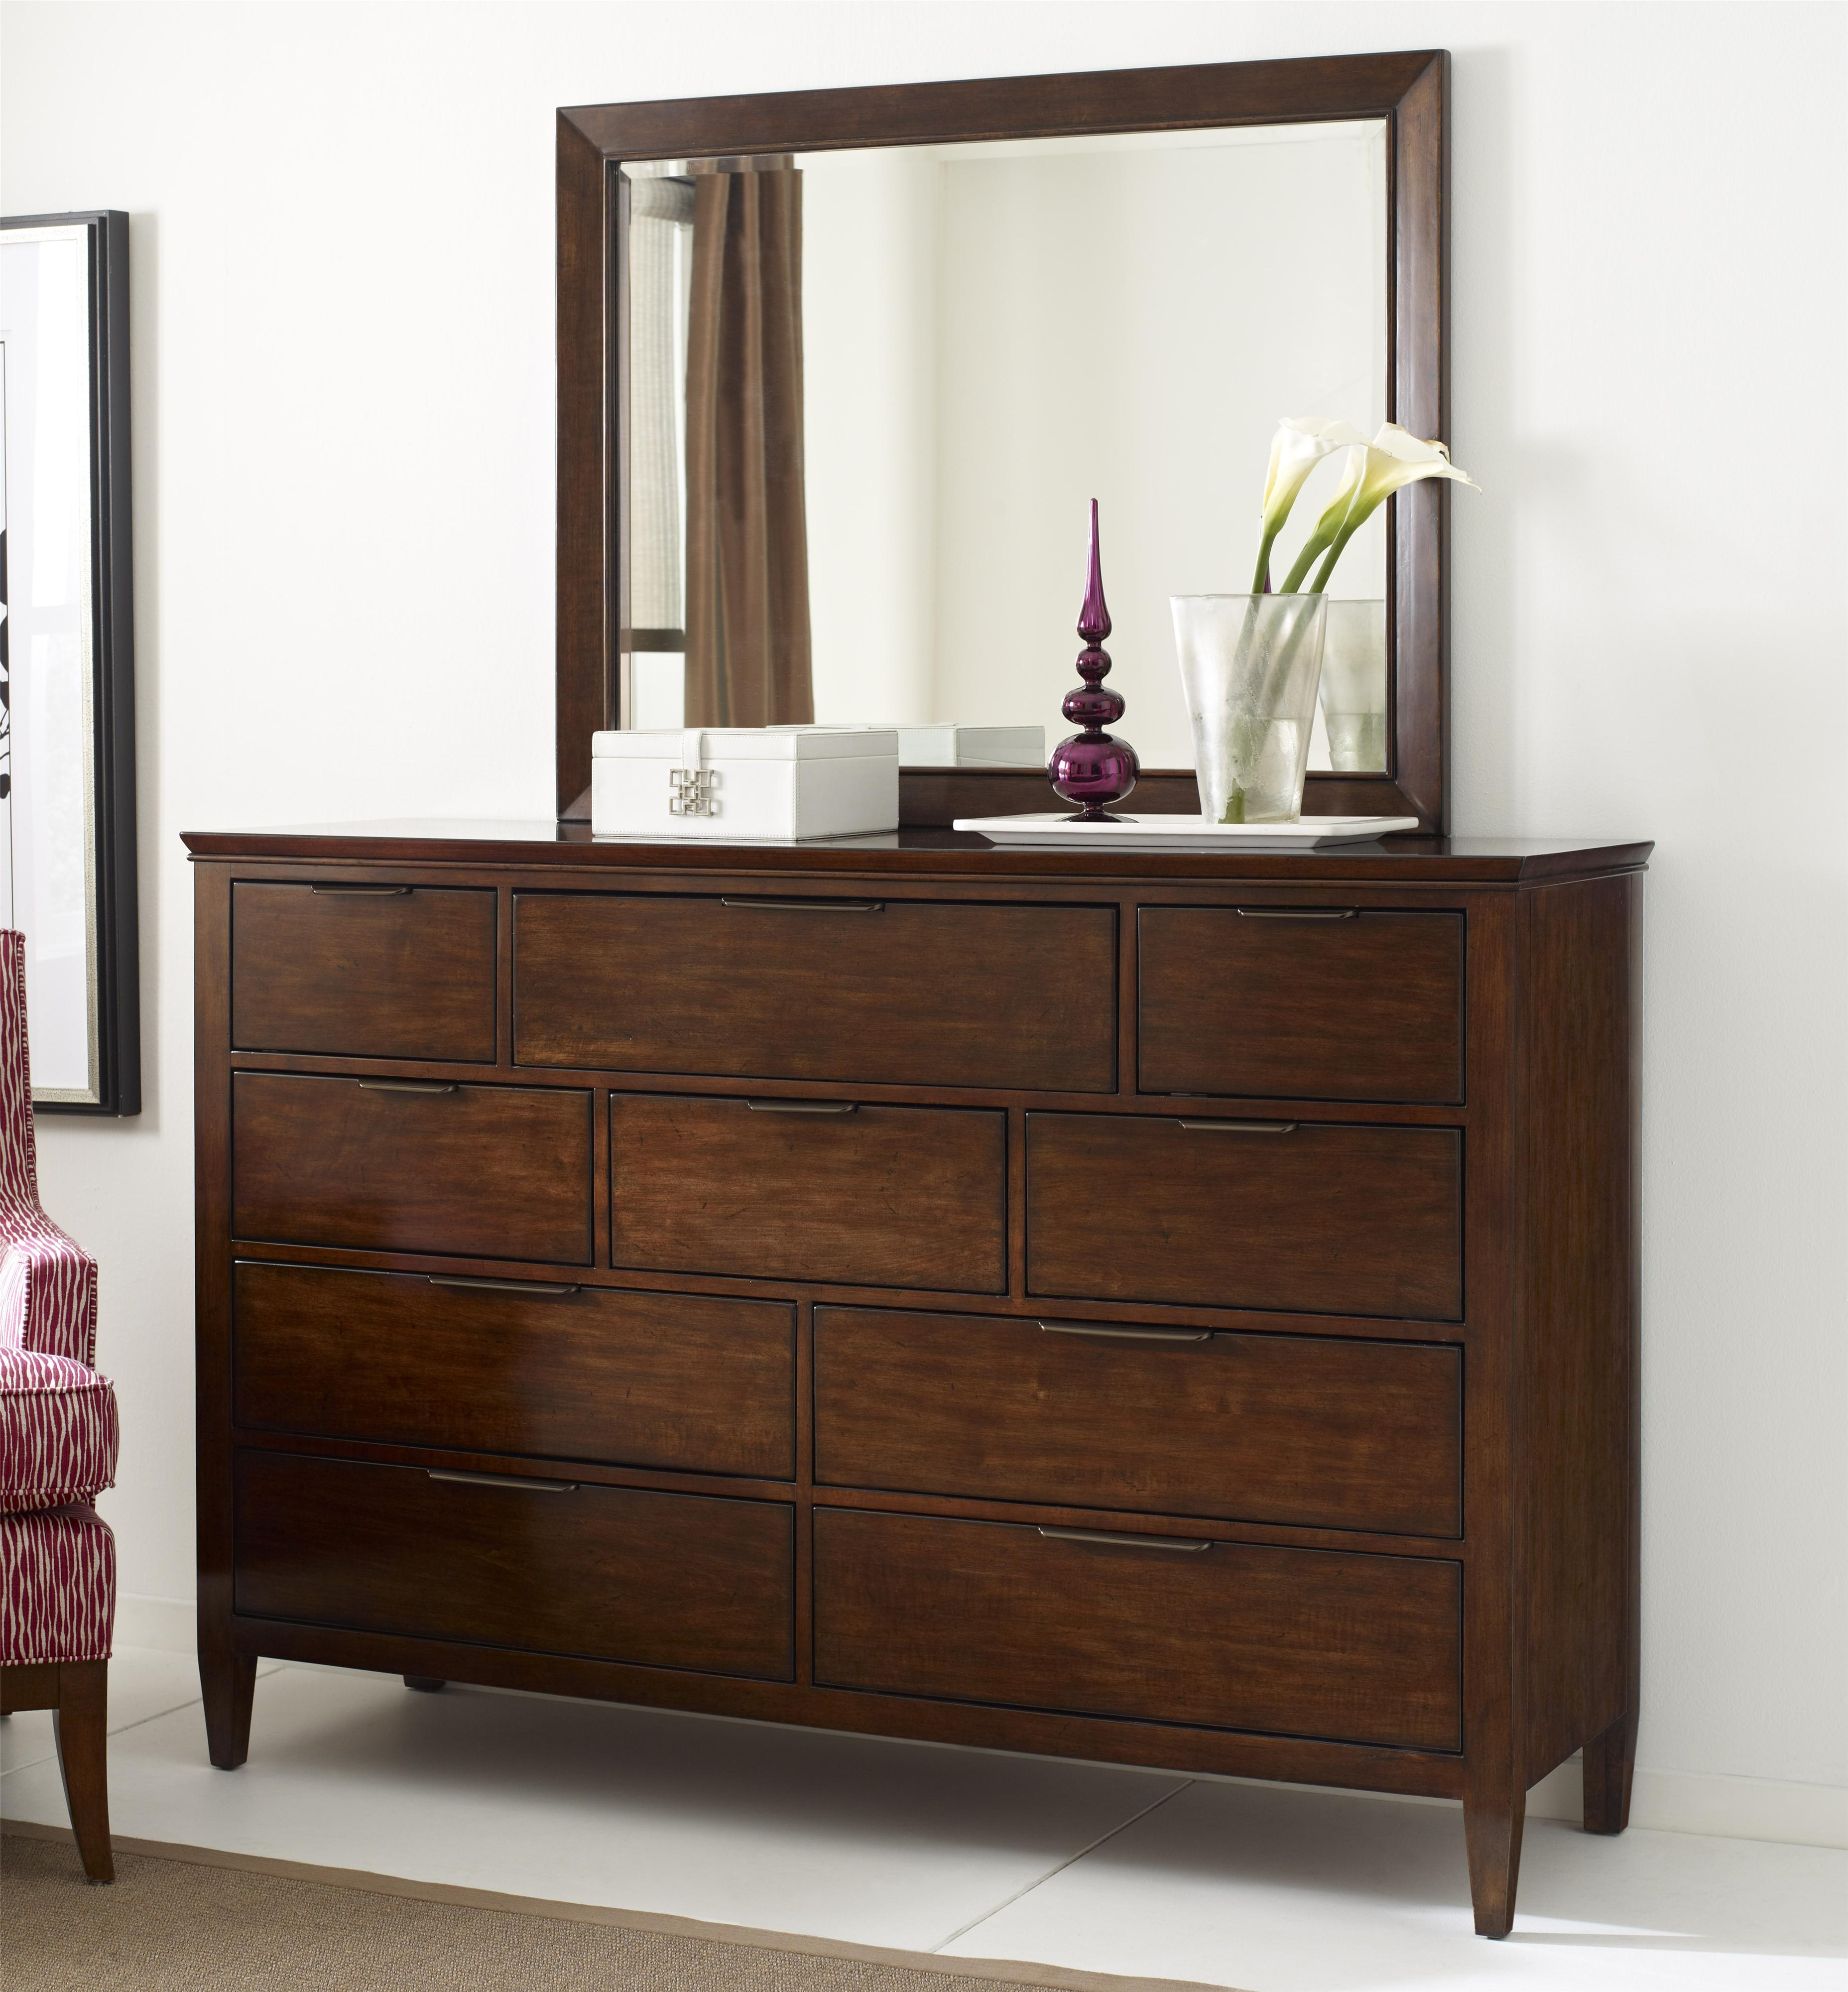 kincaid furniture elise transitional luccia bureau and mirror set with drop front media storage. Black Bedroom Furniture Sets. Home Design Ideas